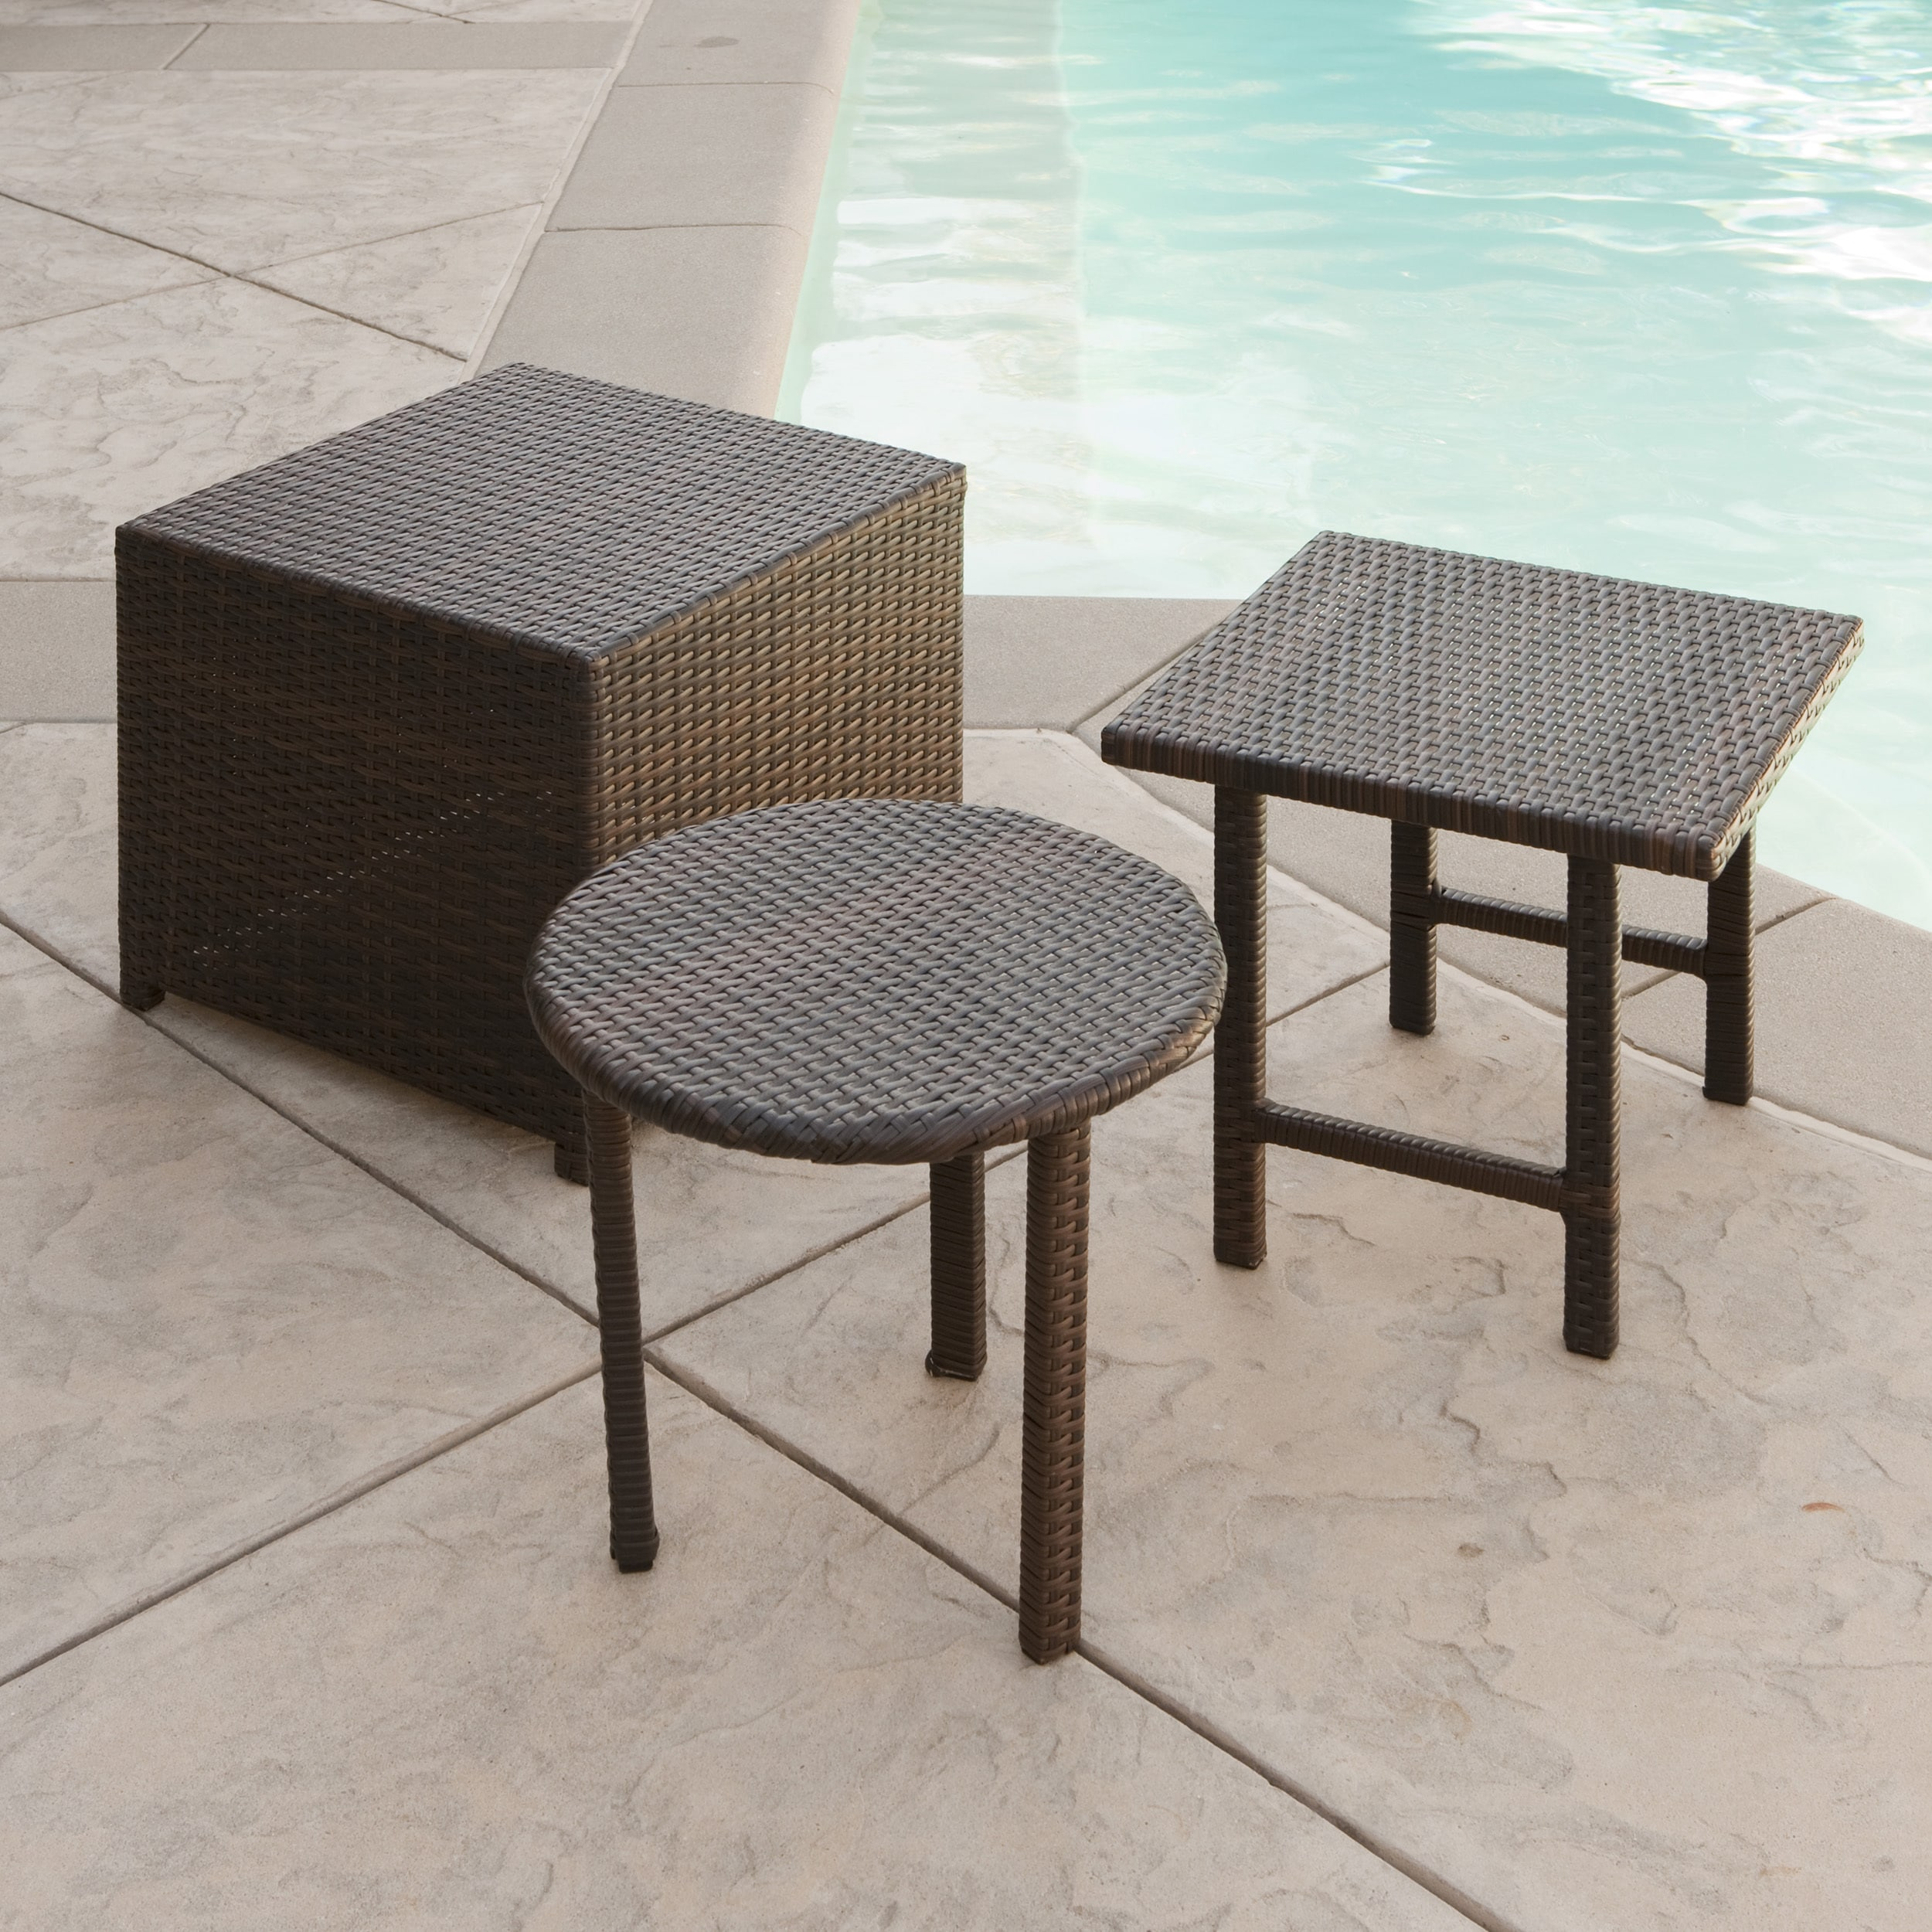 3 wicker rattan patio furniture outdoor yard dining accent